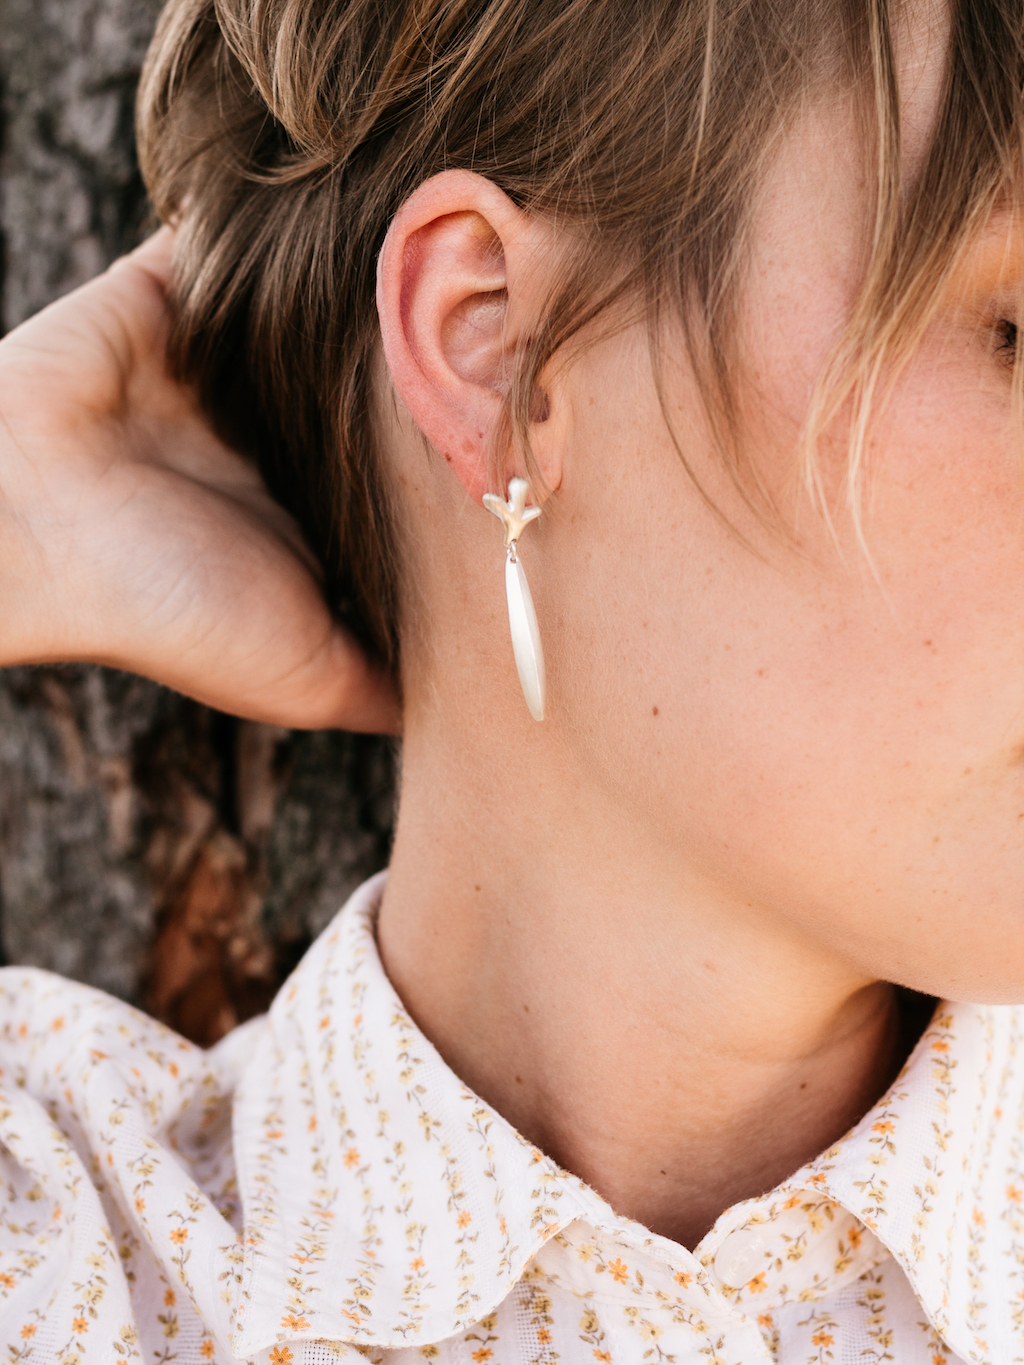 Bud & Leaf Earrings  Shop Here